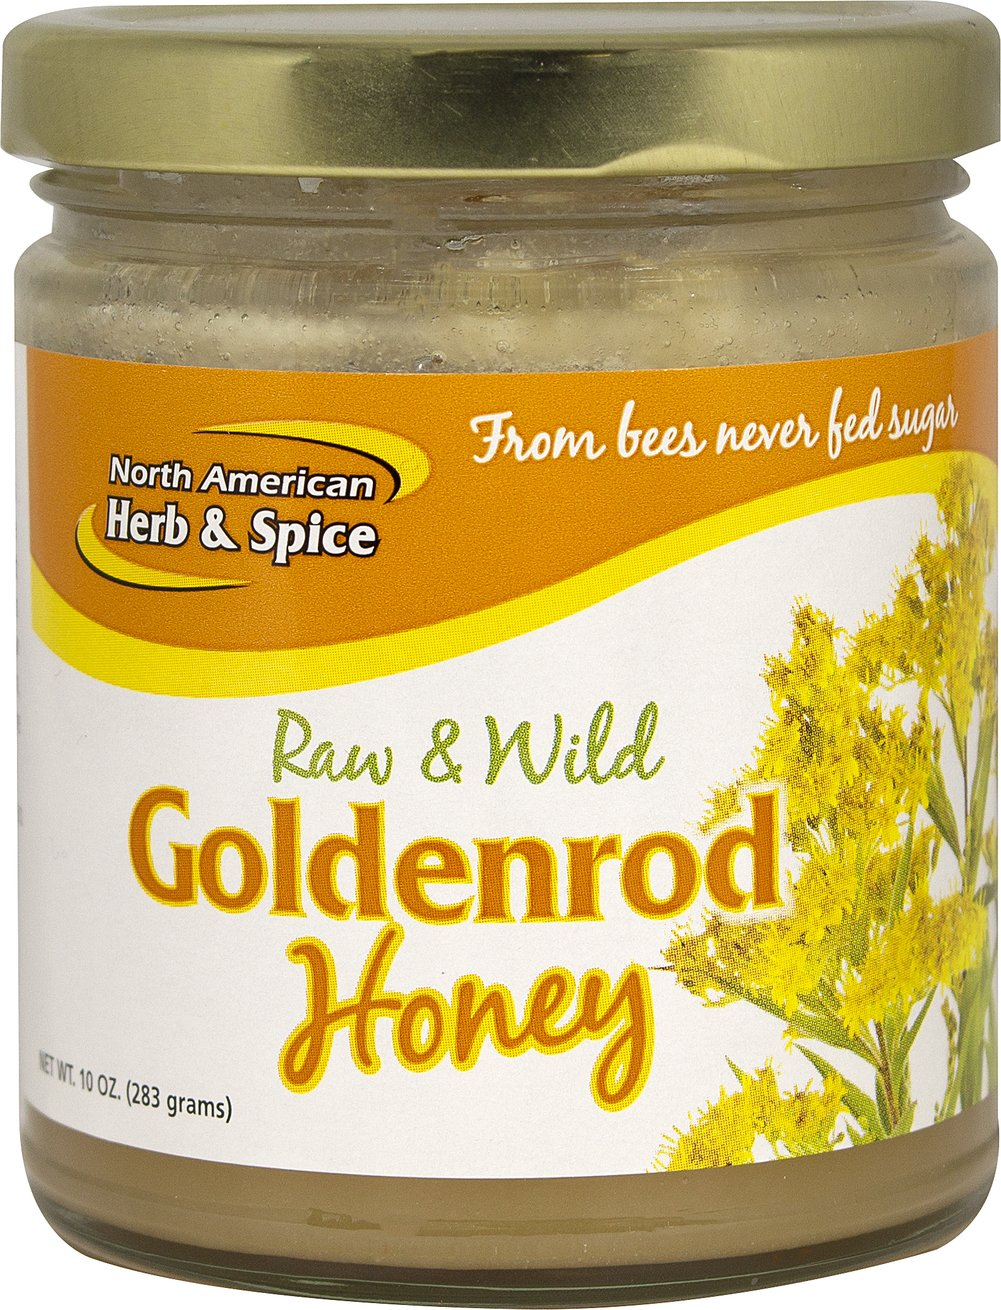 Raw and Wild Goldenrod Honey Thumbnail Alternate Bottle View